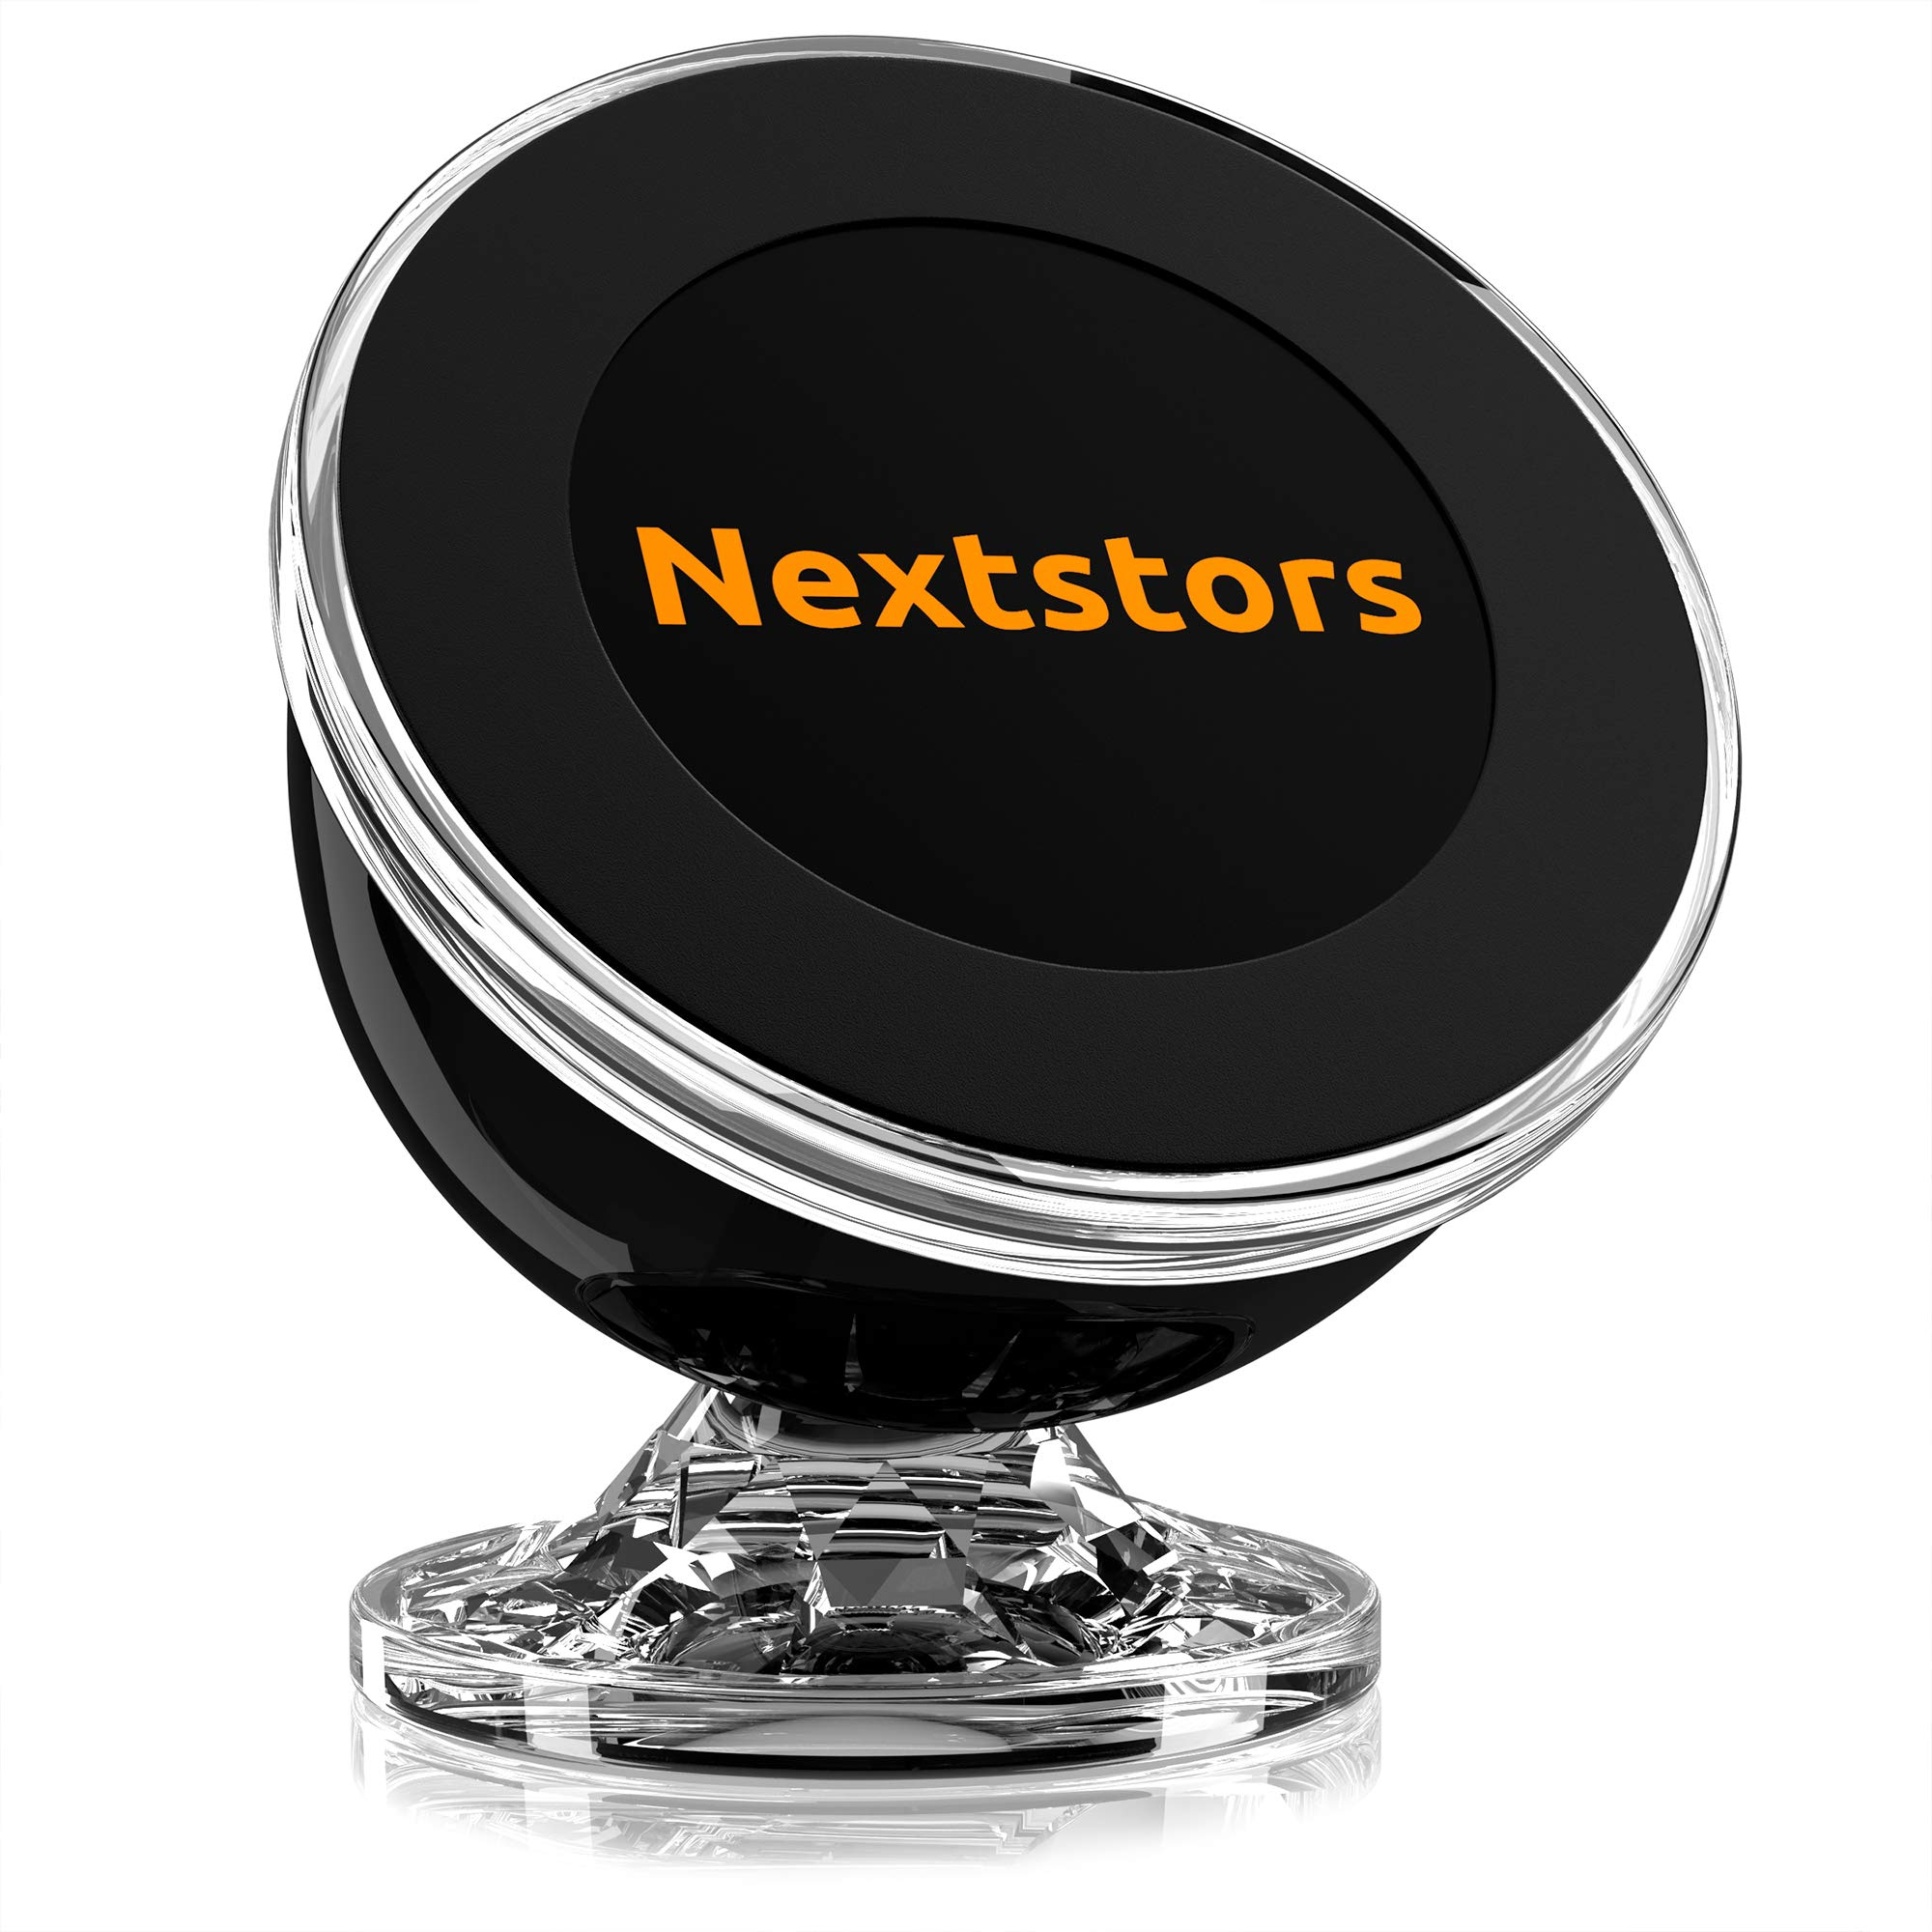 Nextstors Phone Holder for Car Magnetic – Universal Magnetic Phone Car Mount – 360 Degree Rotation from Dashboard – Cell Phone Holder for Car Compatible with All Smartphones